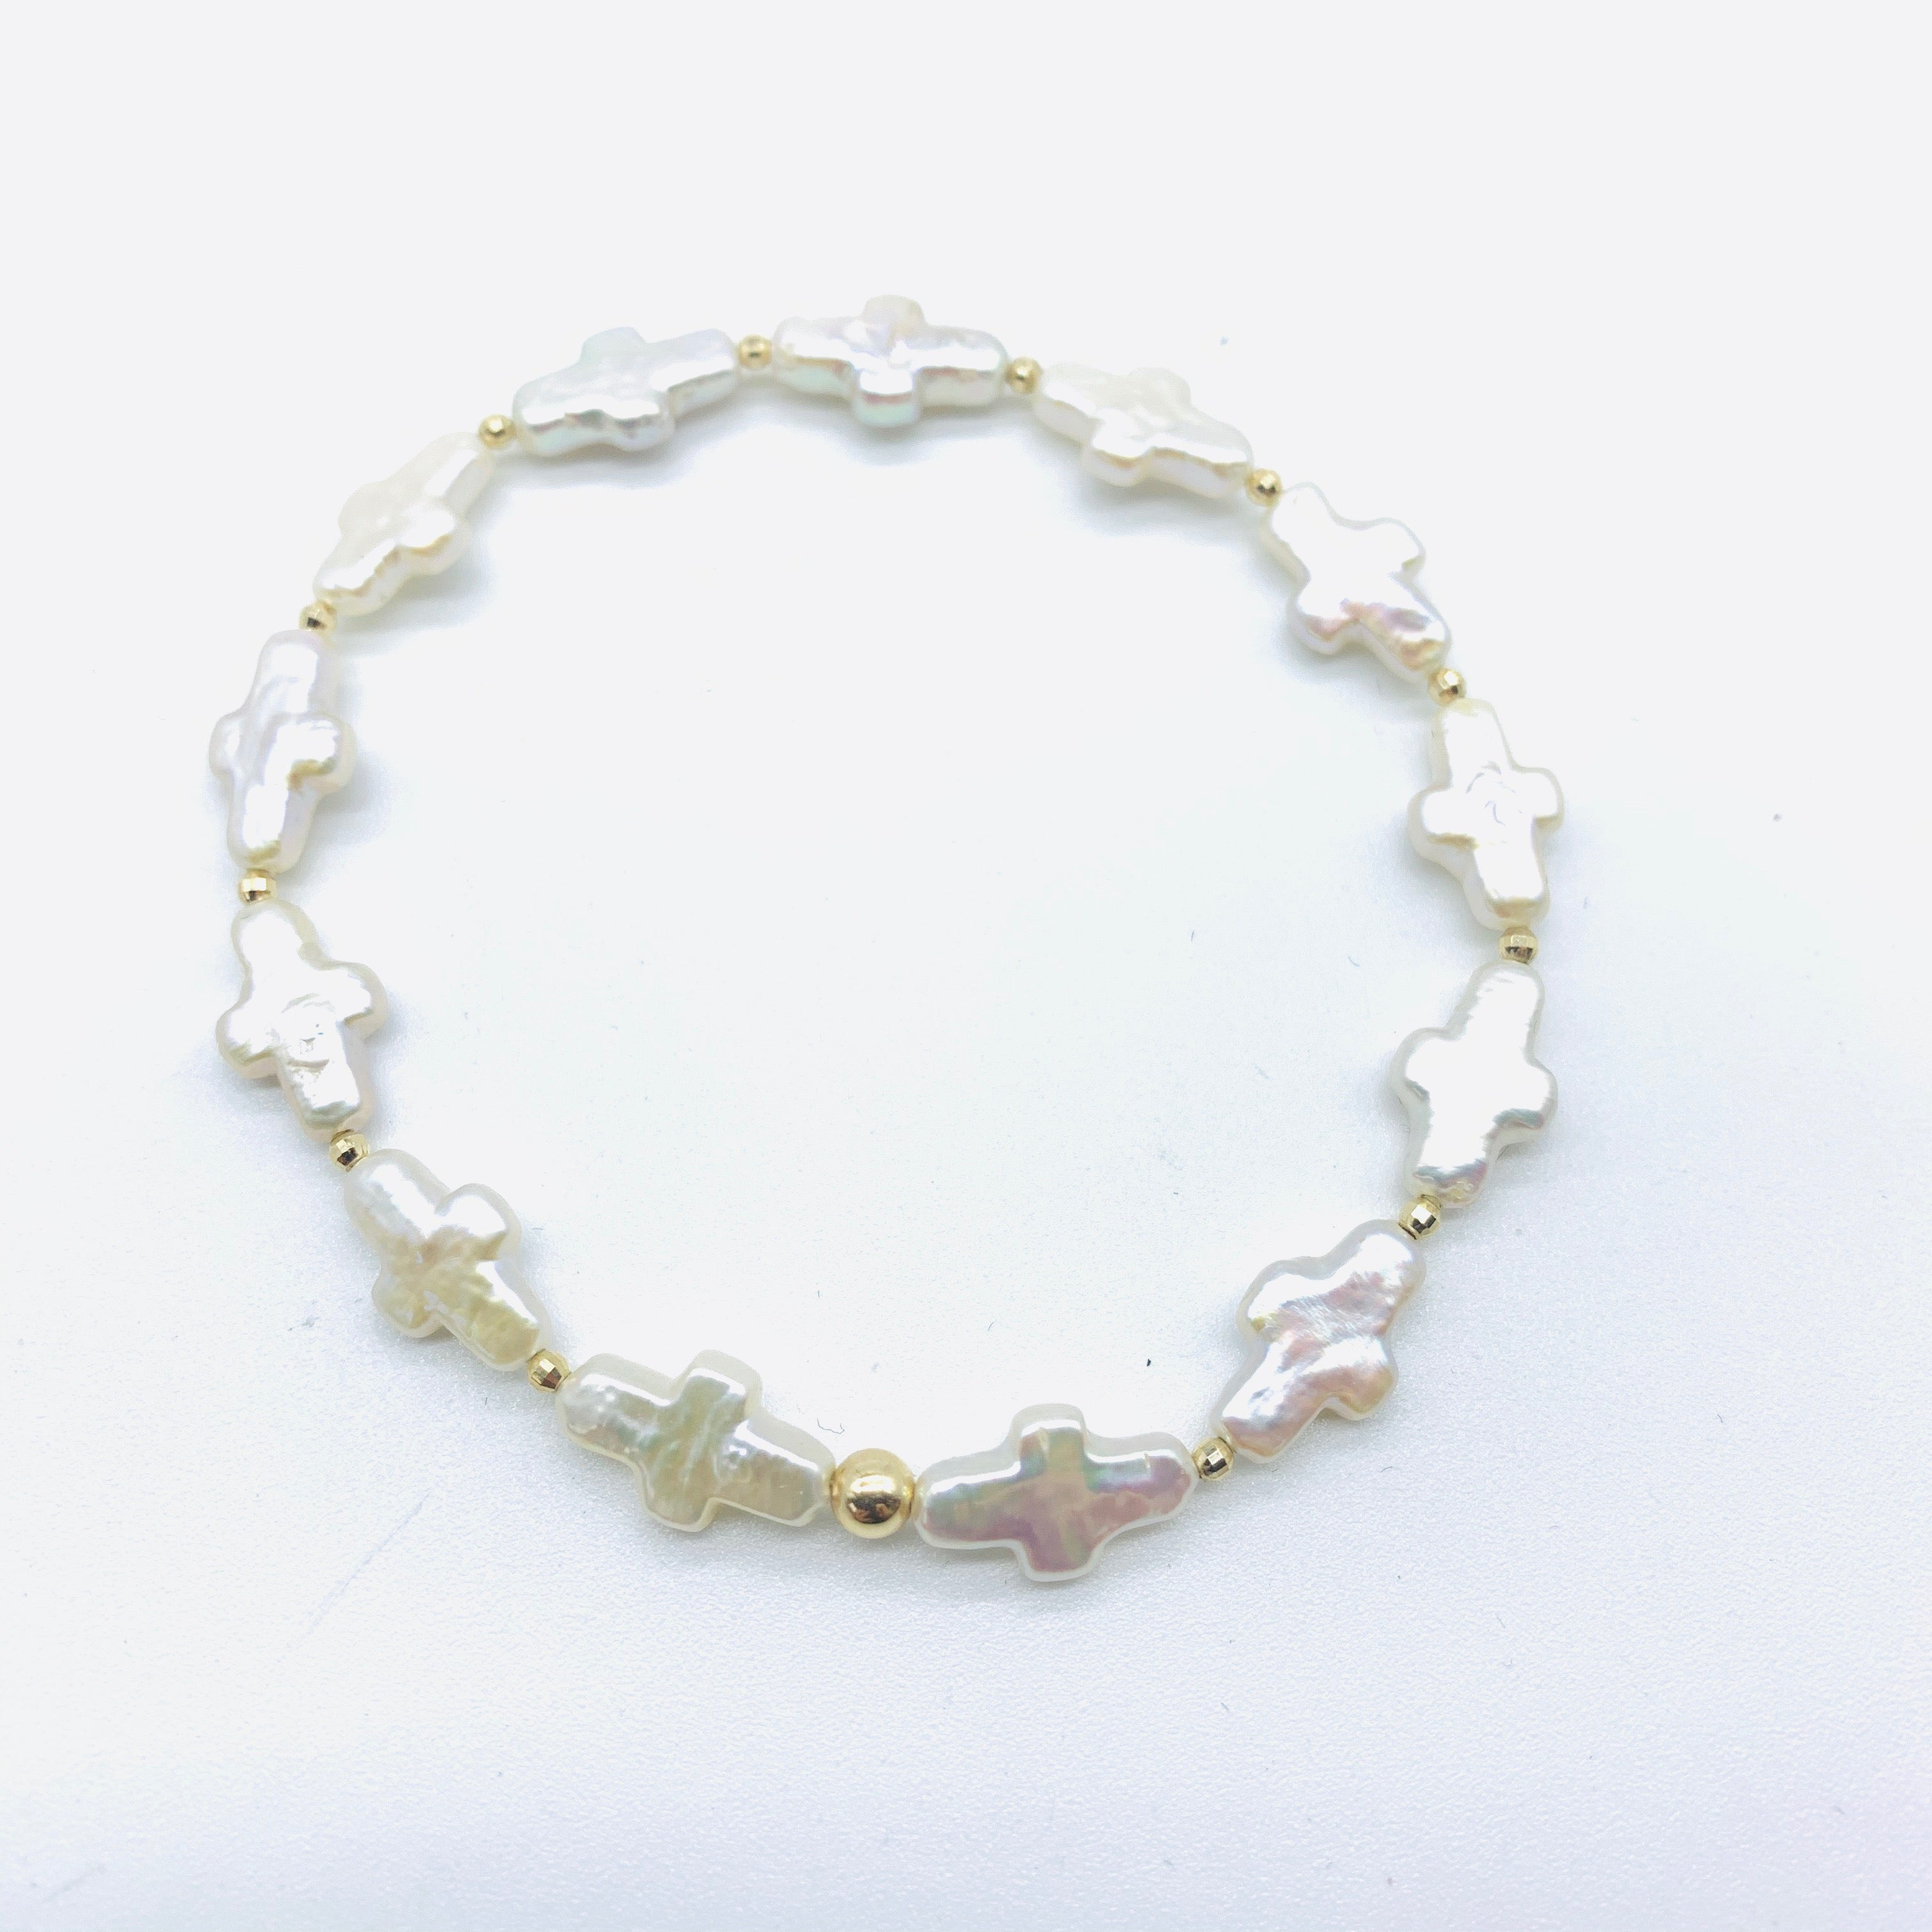 MOTHER OF PEARL CROSS BRACELET WITH 14K GOLD